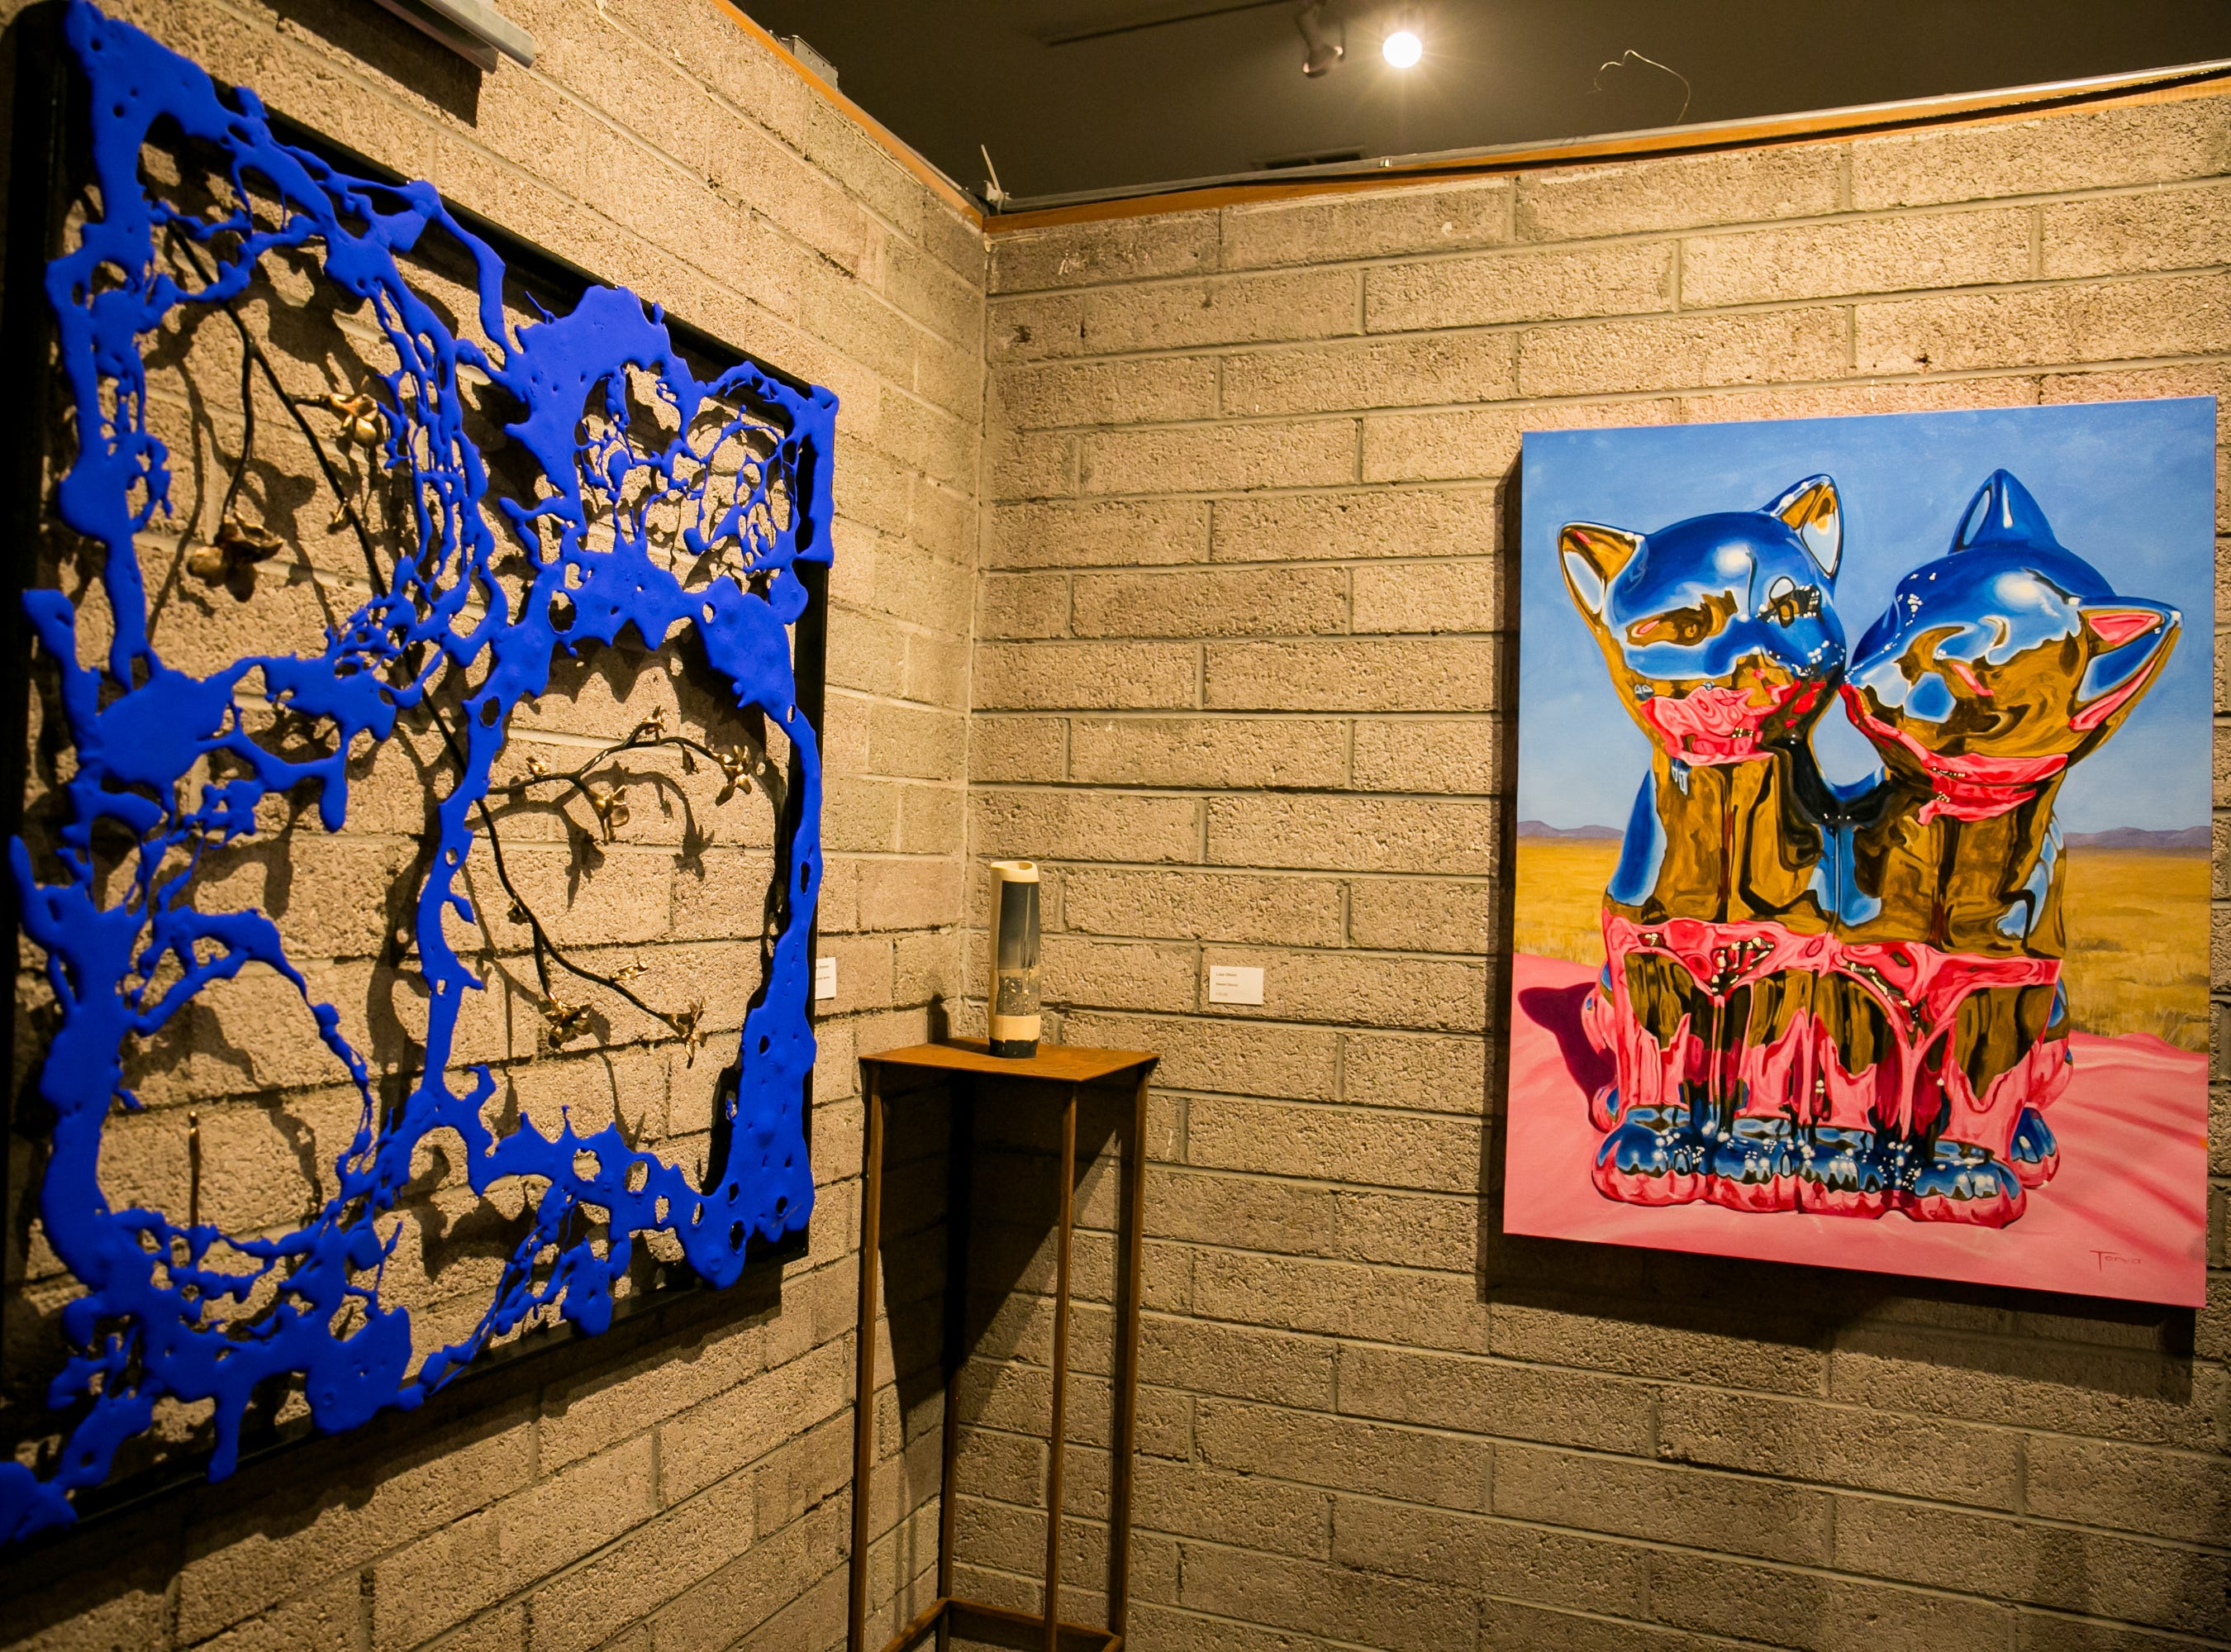 There were stunning pieces around every corner during Chaos Theory 19 at Legend City Studios during First Friday on October 5, 2018.